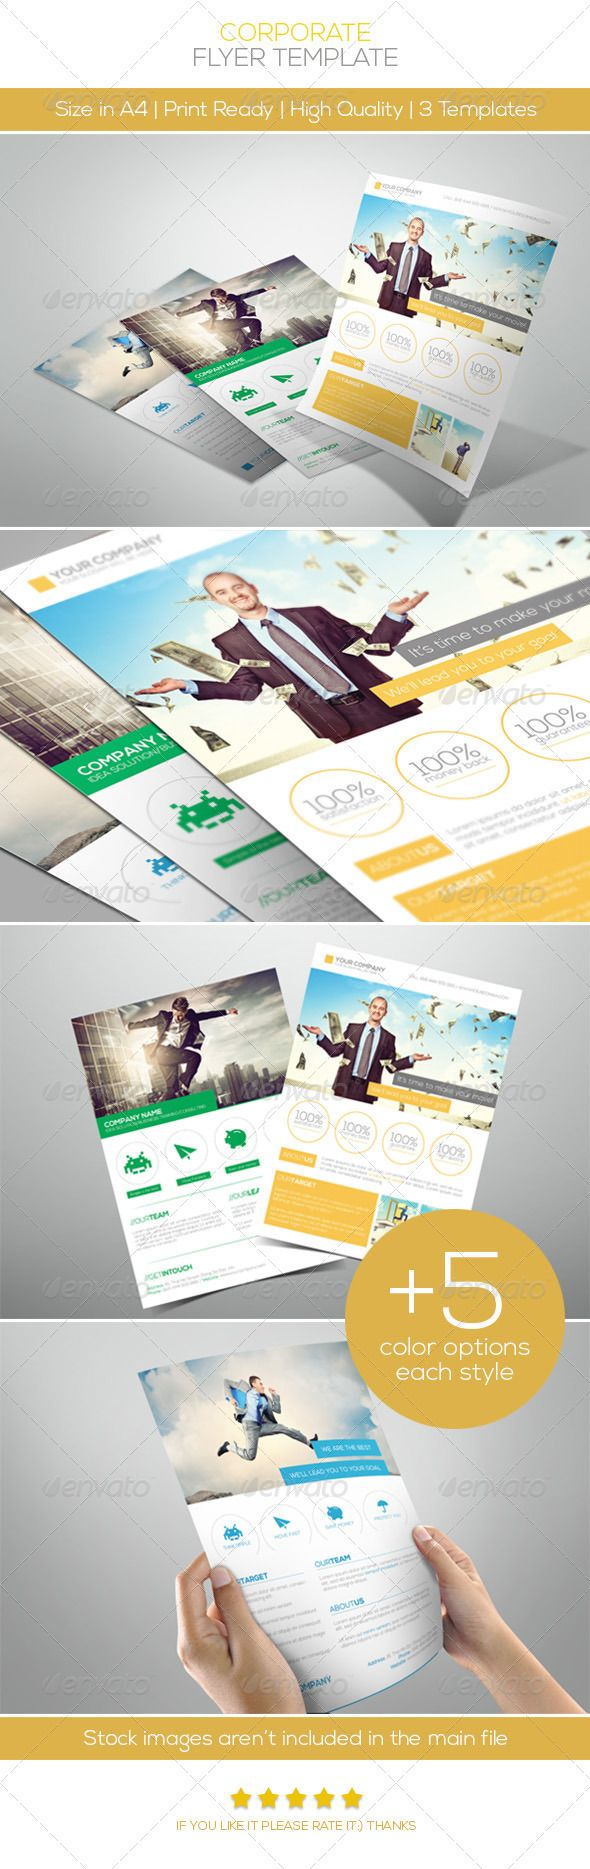 Premium Corporate Flyers Vol2